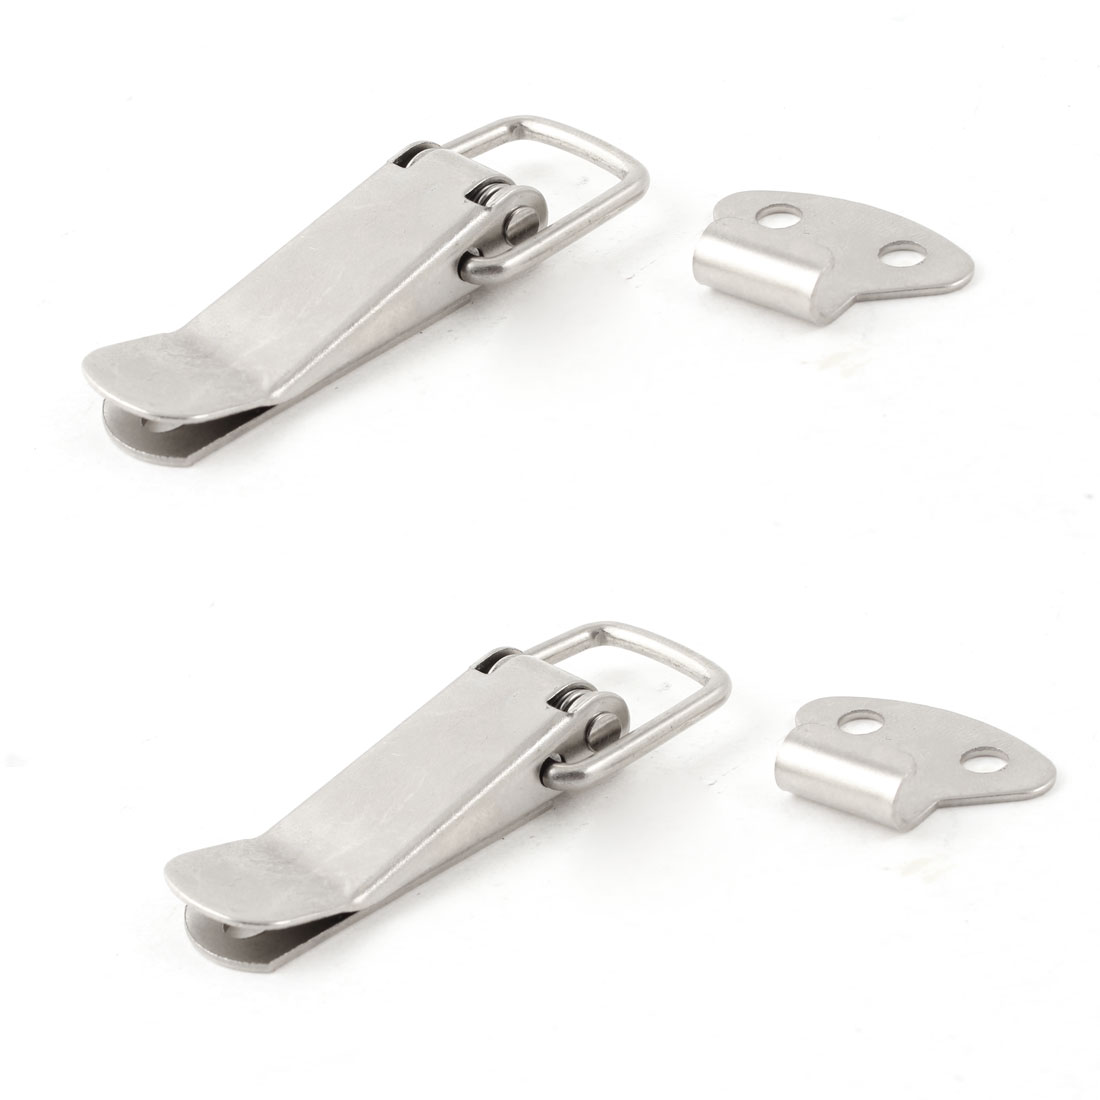 2 Set 5.5cm Length Boxes Case Silver Tone Spring Loaded Toggle Latch Hasp